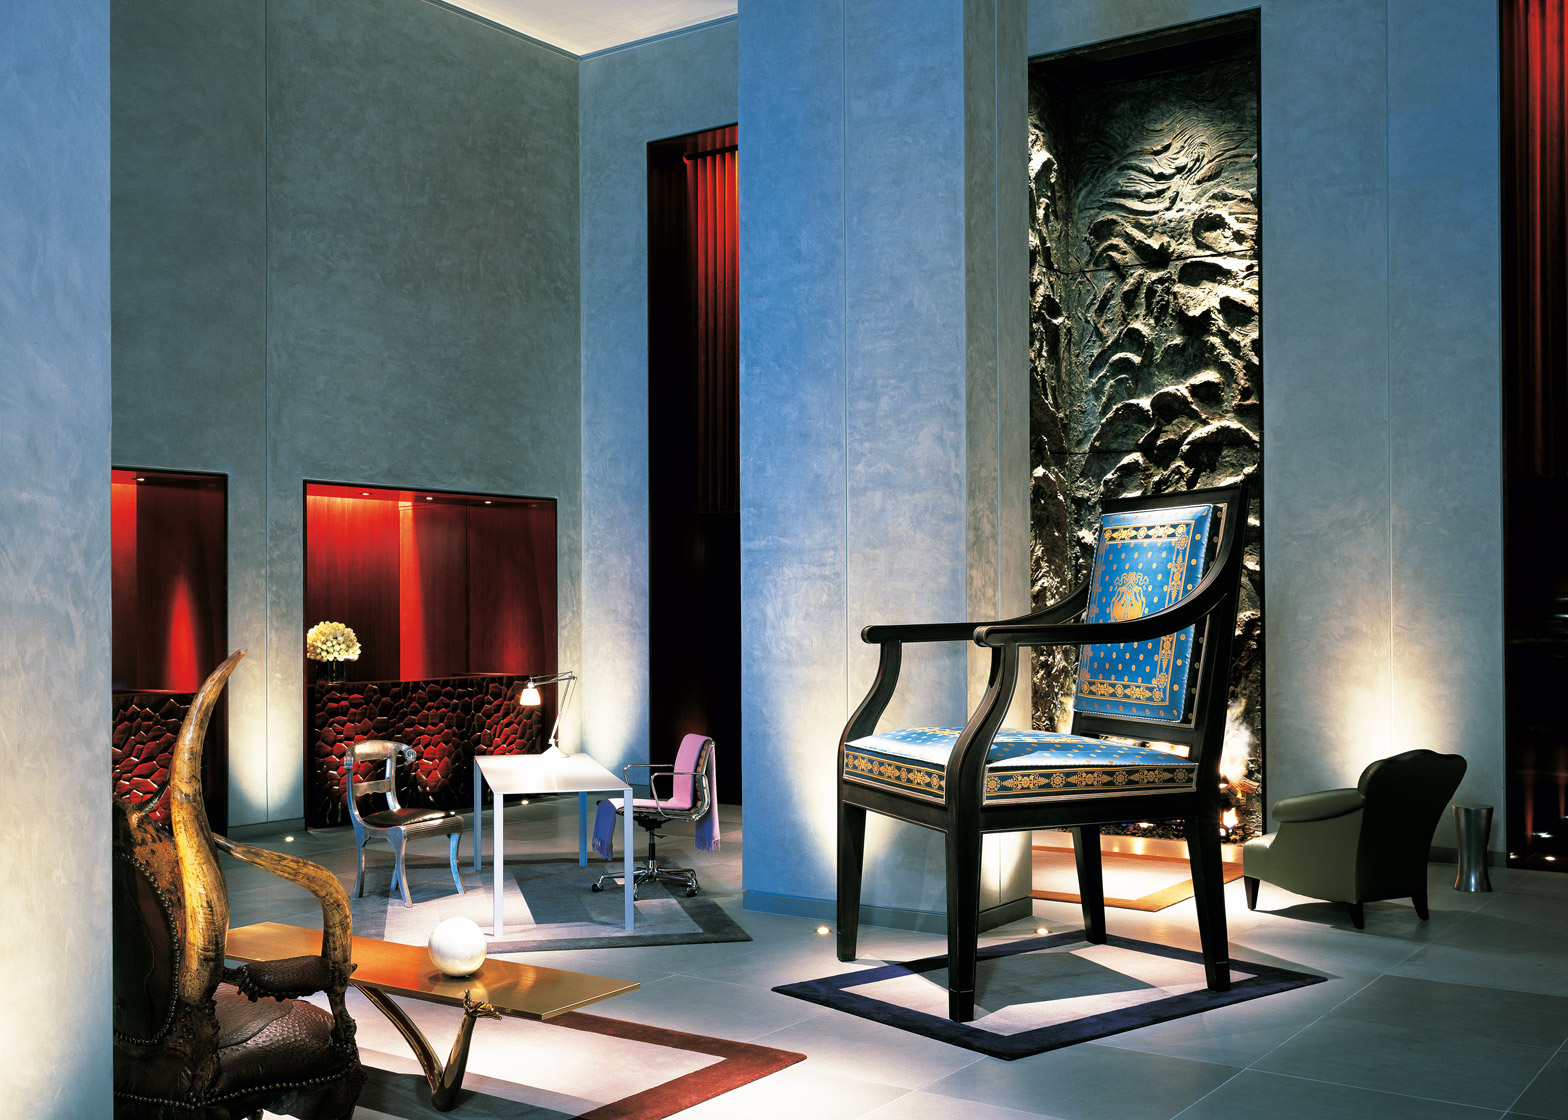 Starck also designed the Clift in San Francisco which opened in 2000 featuring furniture pieces by Salvador Dali